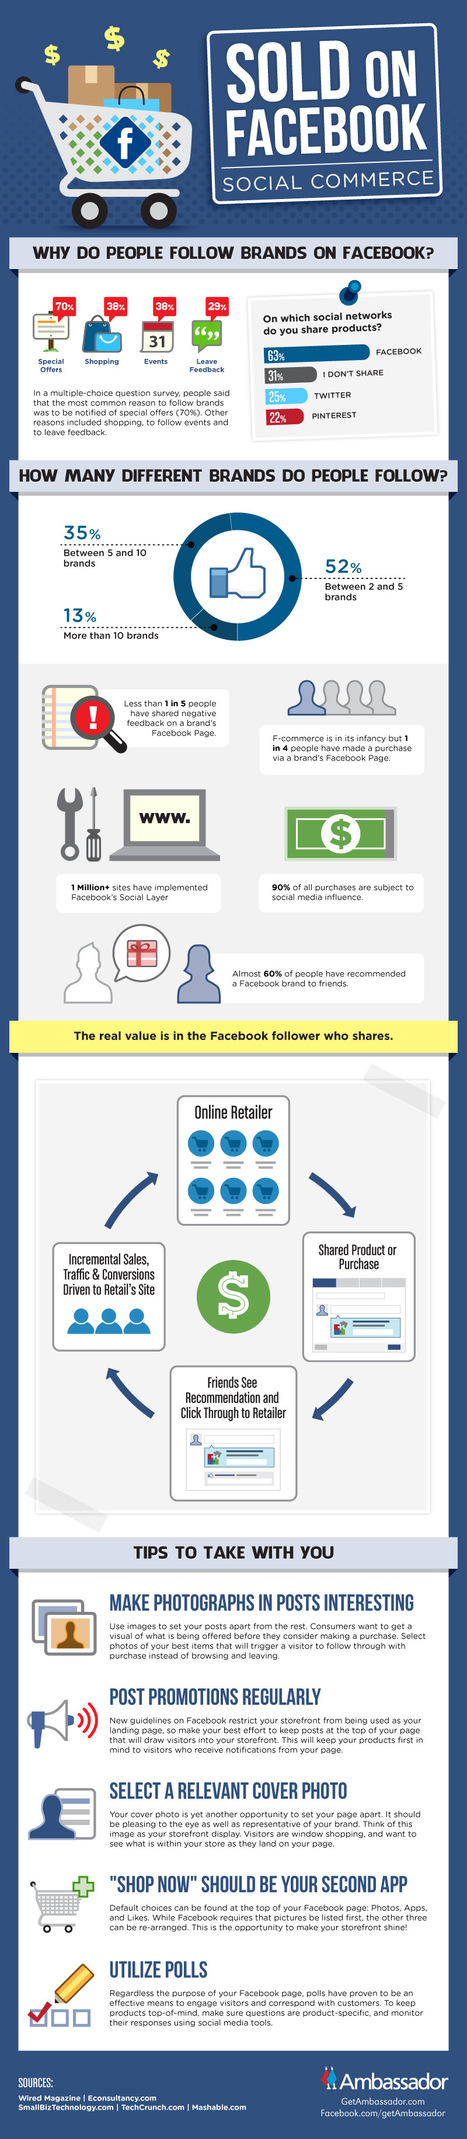 INFOGRAPHIC: What Makes People Sold On Brands On Facebook? | Personal Branding and Professional networks - @TOOLS_BOX_INC @TOOLS_BOX_EUR @TOOLS_BOX_DEV @TOOLS_BOX_FR @TOOLS_BOX_FR @P_TREBAUL @Best_OfTweets | Scoop.it